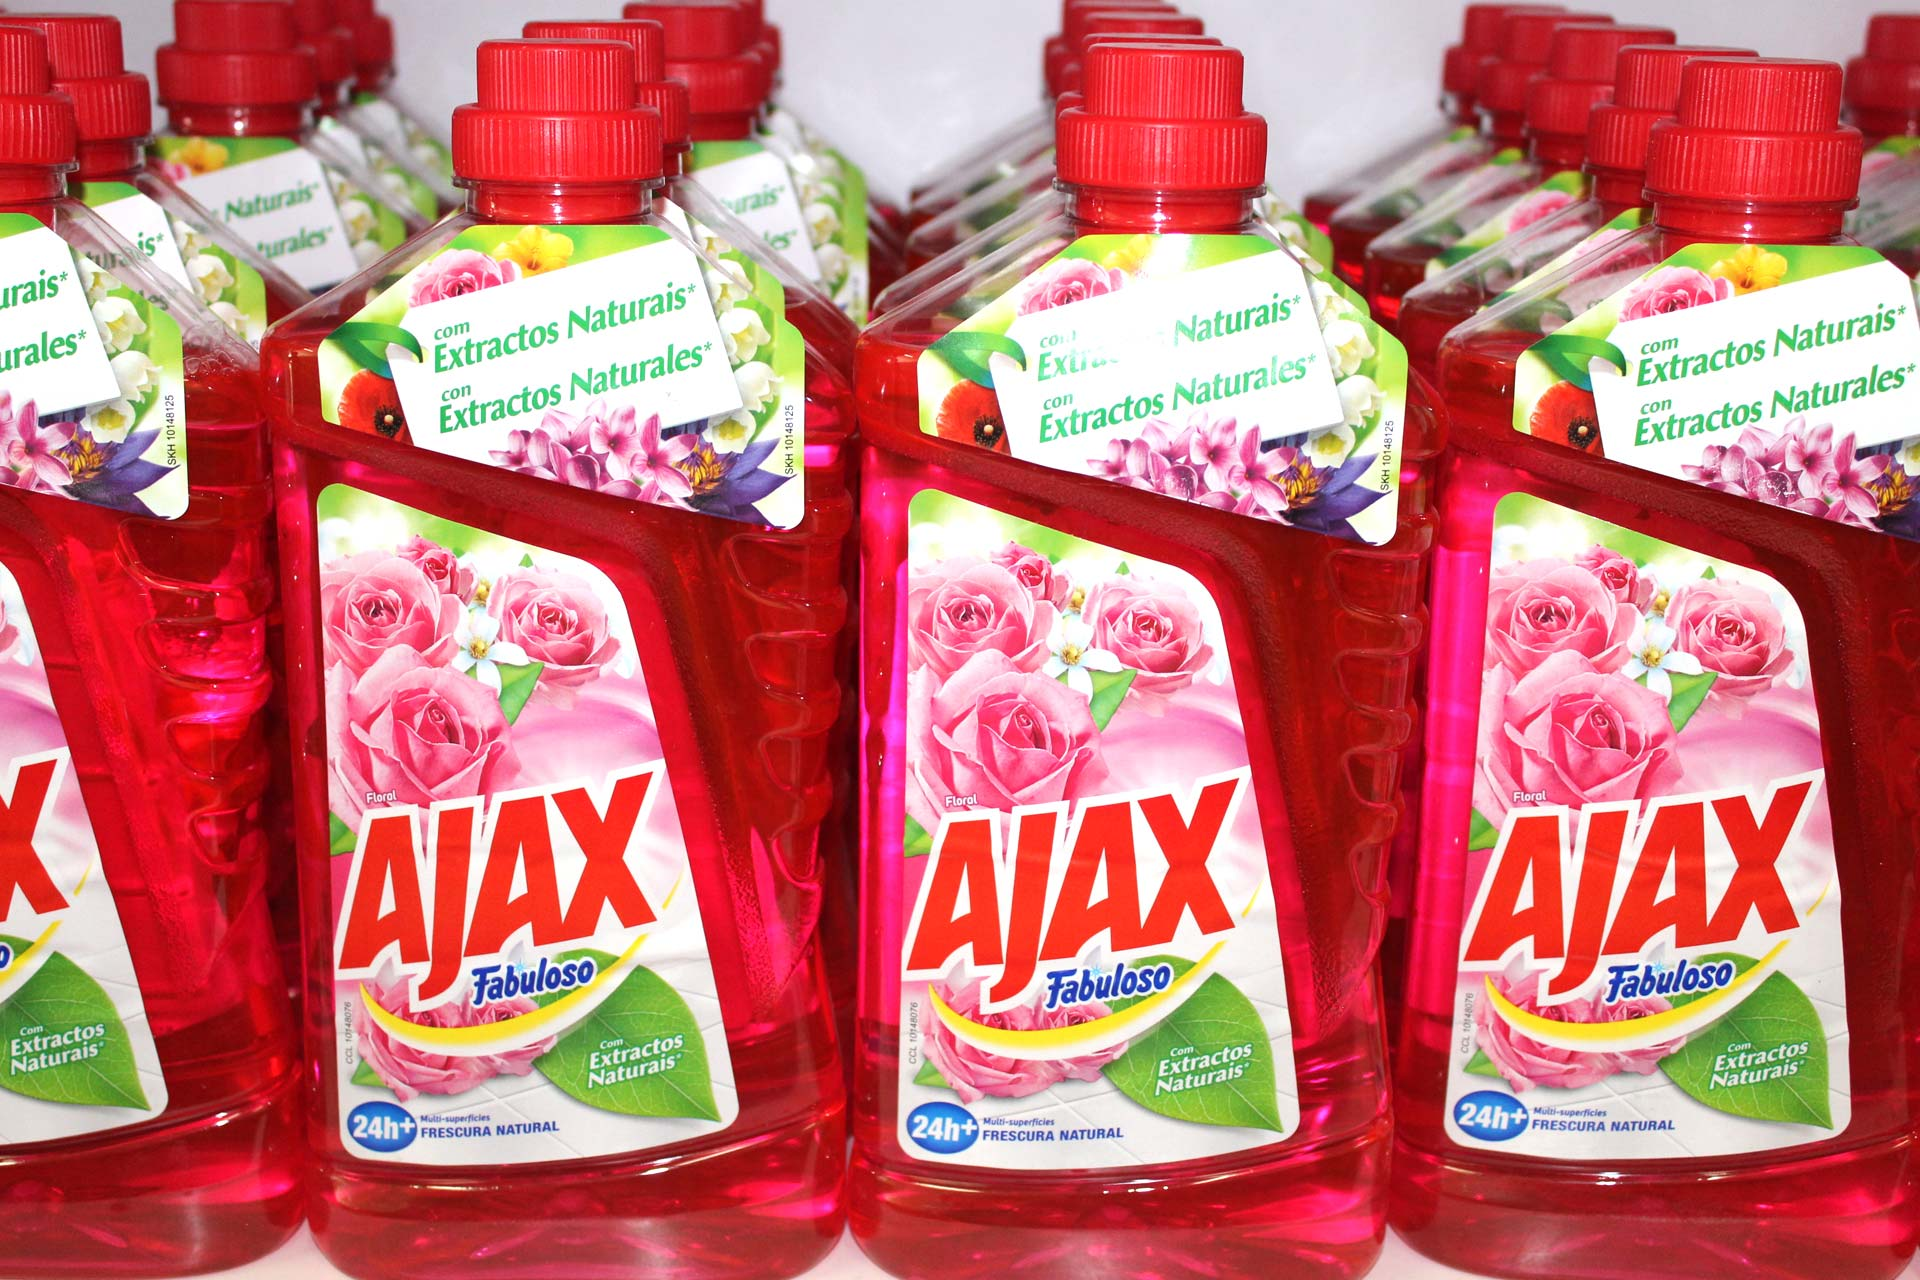 Suave Angola | Detergents, Domestic Products